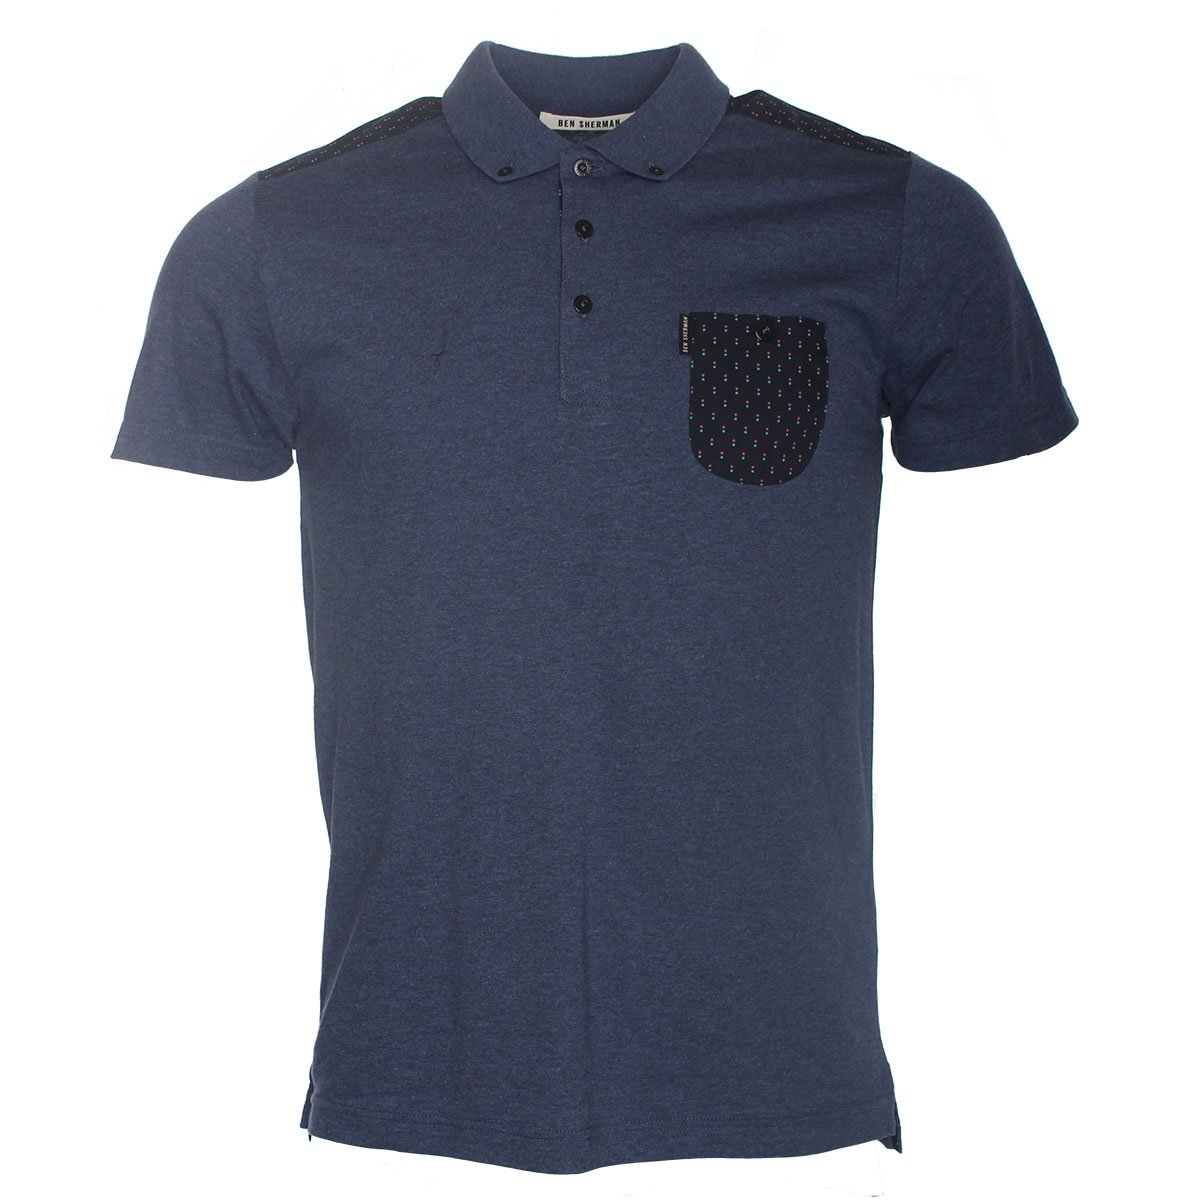 Polo t shirts pocket for Polo t shirts with pocket online